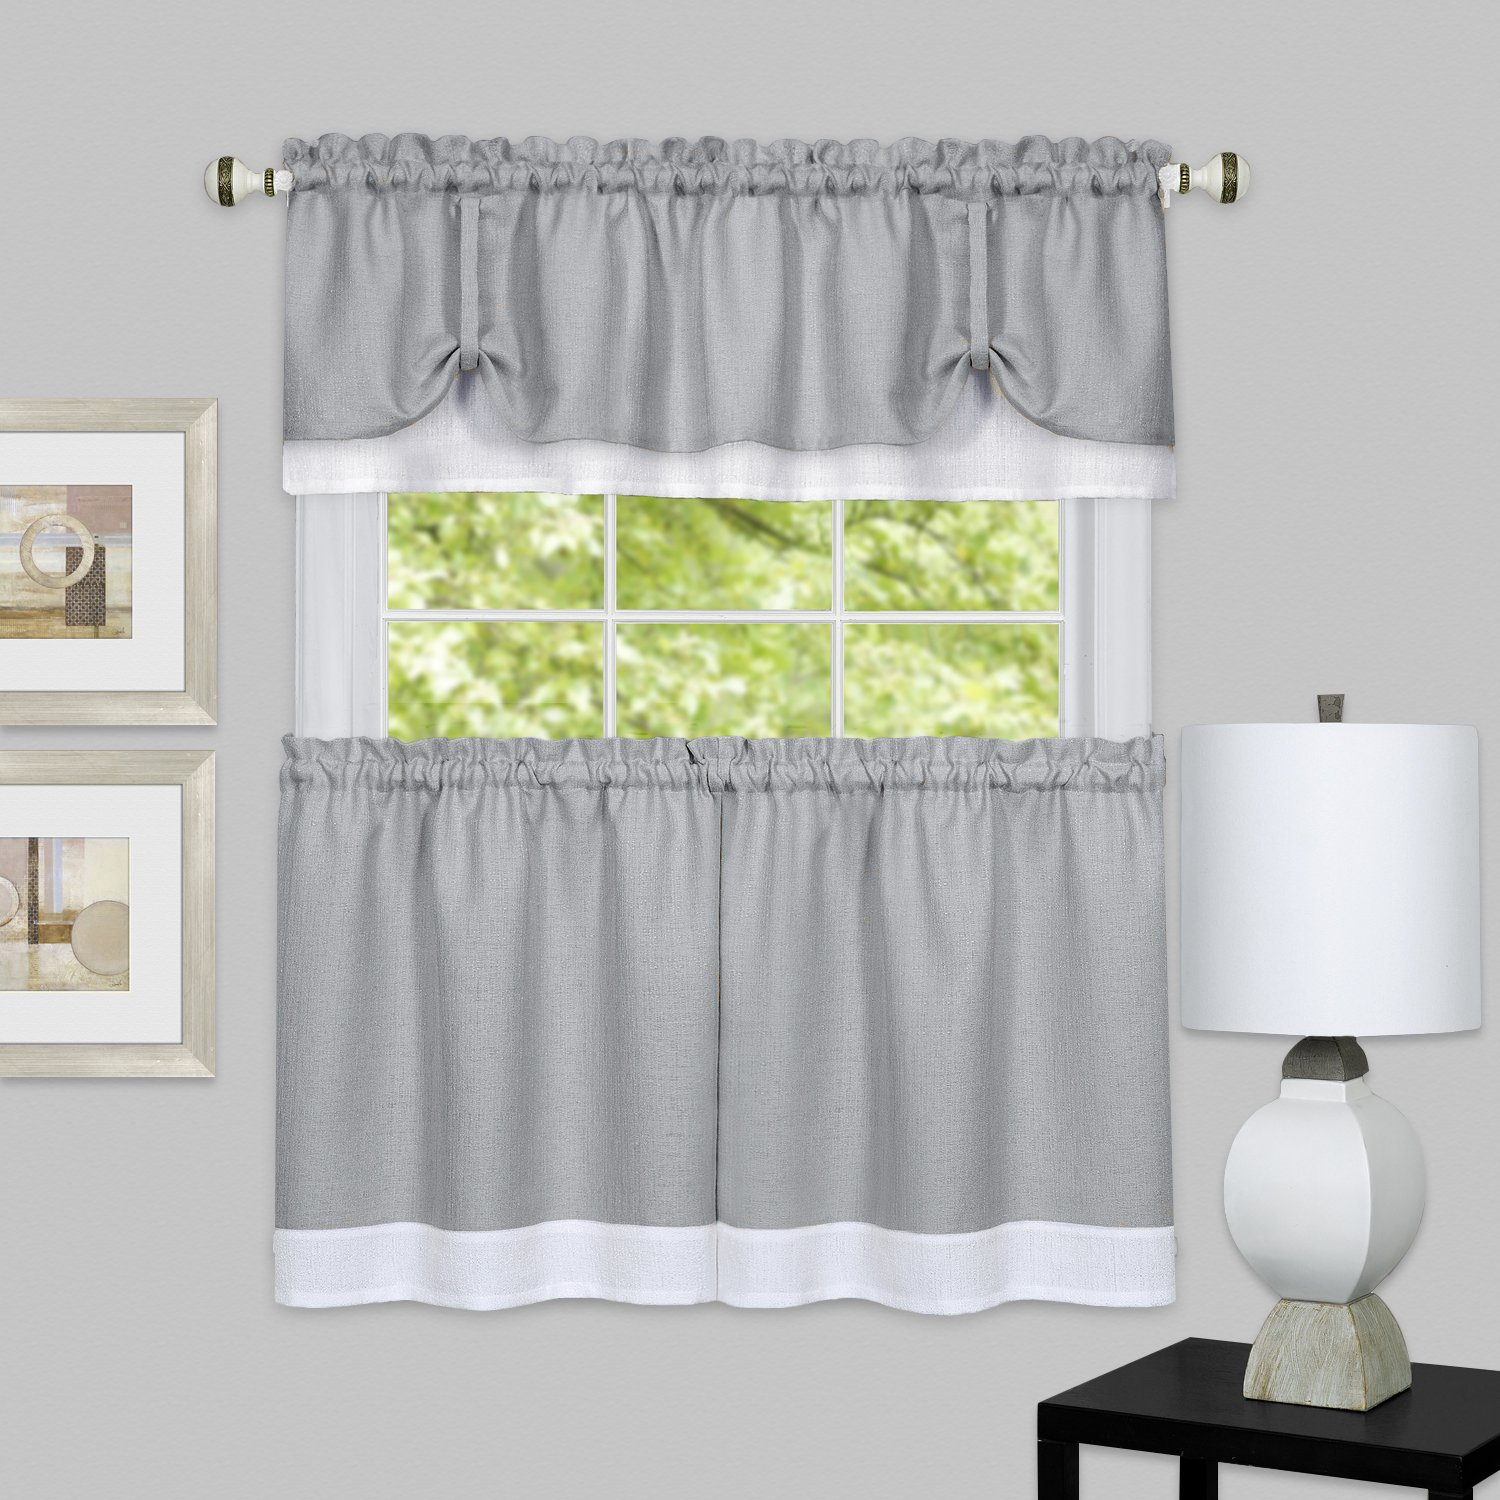 "Achim Home Furnishings chim Home Furnishings DRTV24GW12 Darcy Window Curtain Tier Pair & Valance Set, 58"" x 24"" with 14"" Valance, Grey/White Pair"